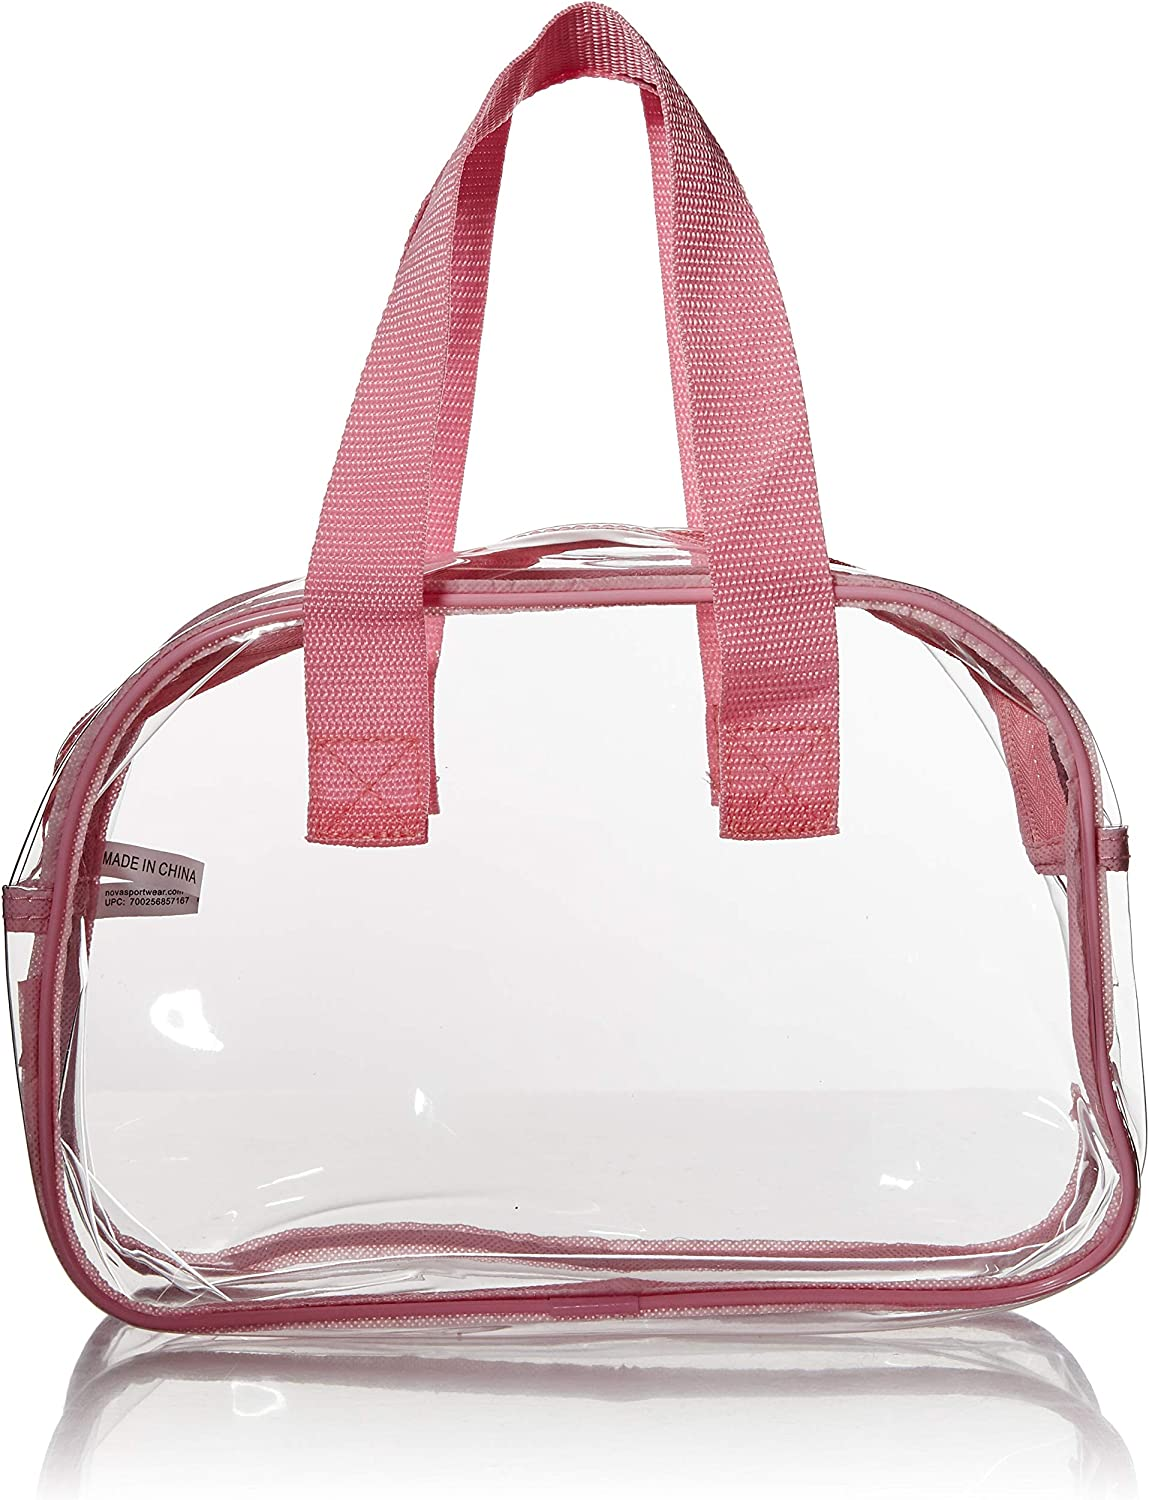 Nova Sport Wear Clear Purse That is Event Stadium Approved. Clear Handbags for Cosmetics, Makeup, and Travel. Clear Bag Made of Transparent Plastic